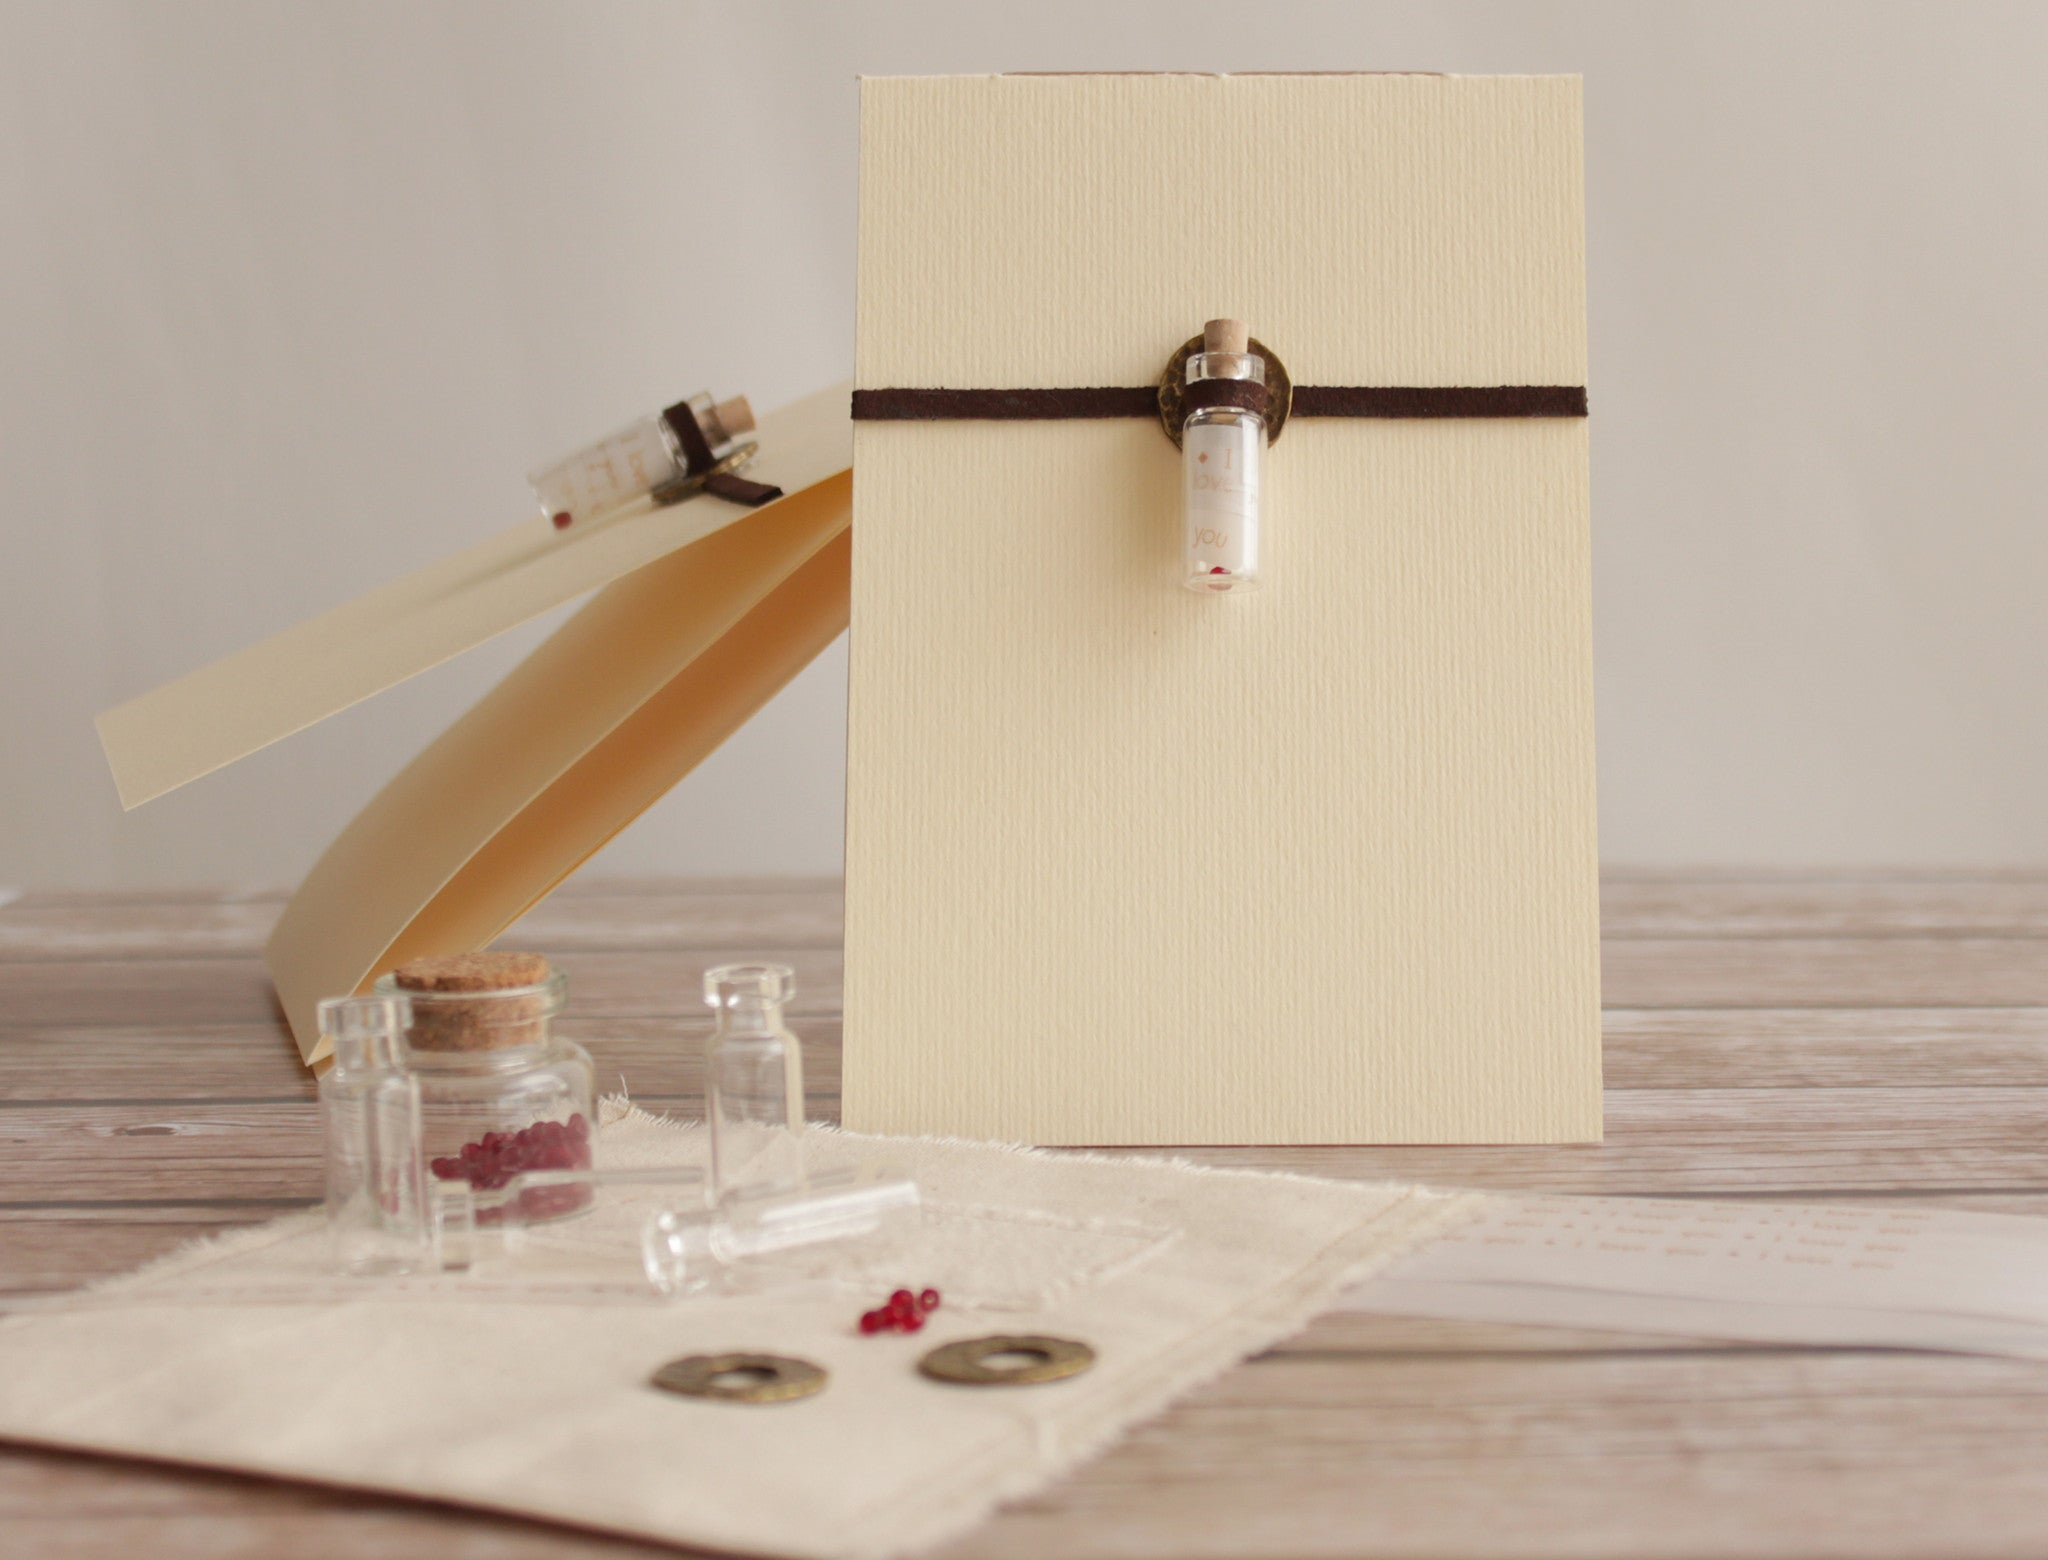 Message in a bottle - I love you greeting card